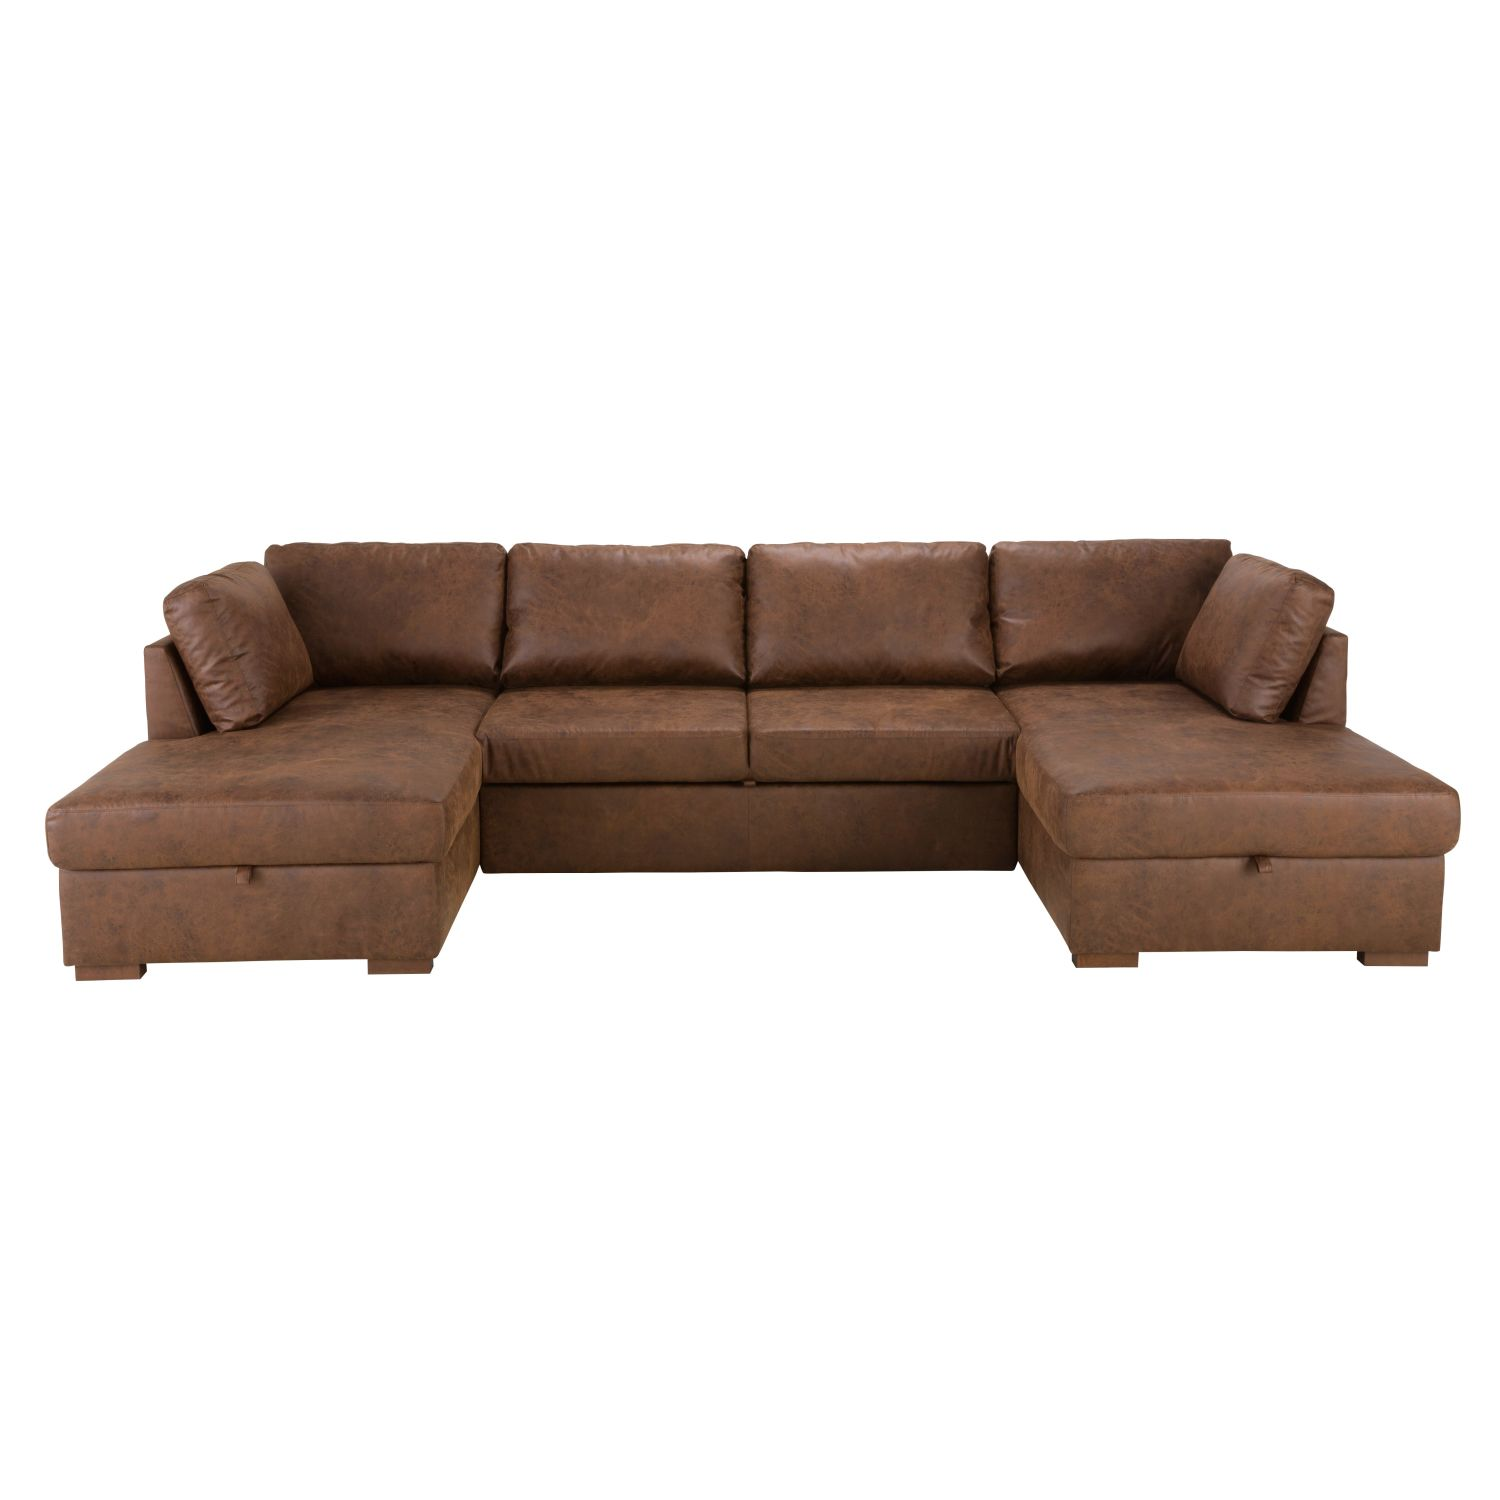 Brown 7 Seater Microsuede U Shaped Sofa Bed Maisons Du Monde